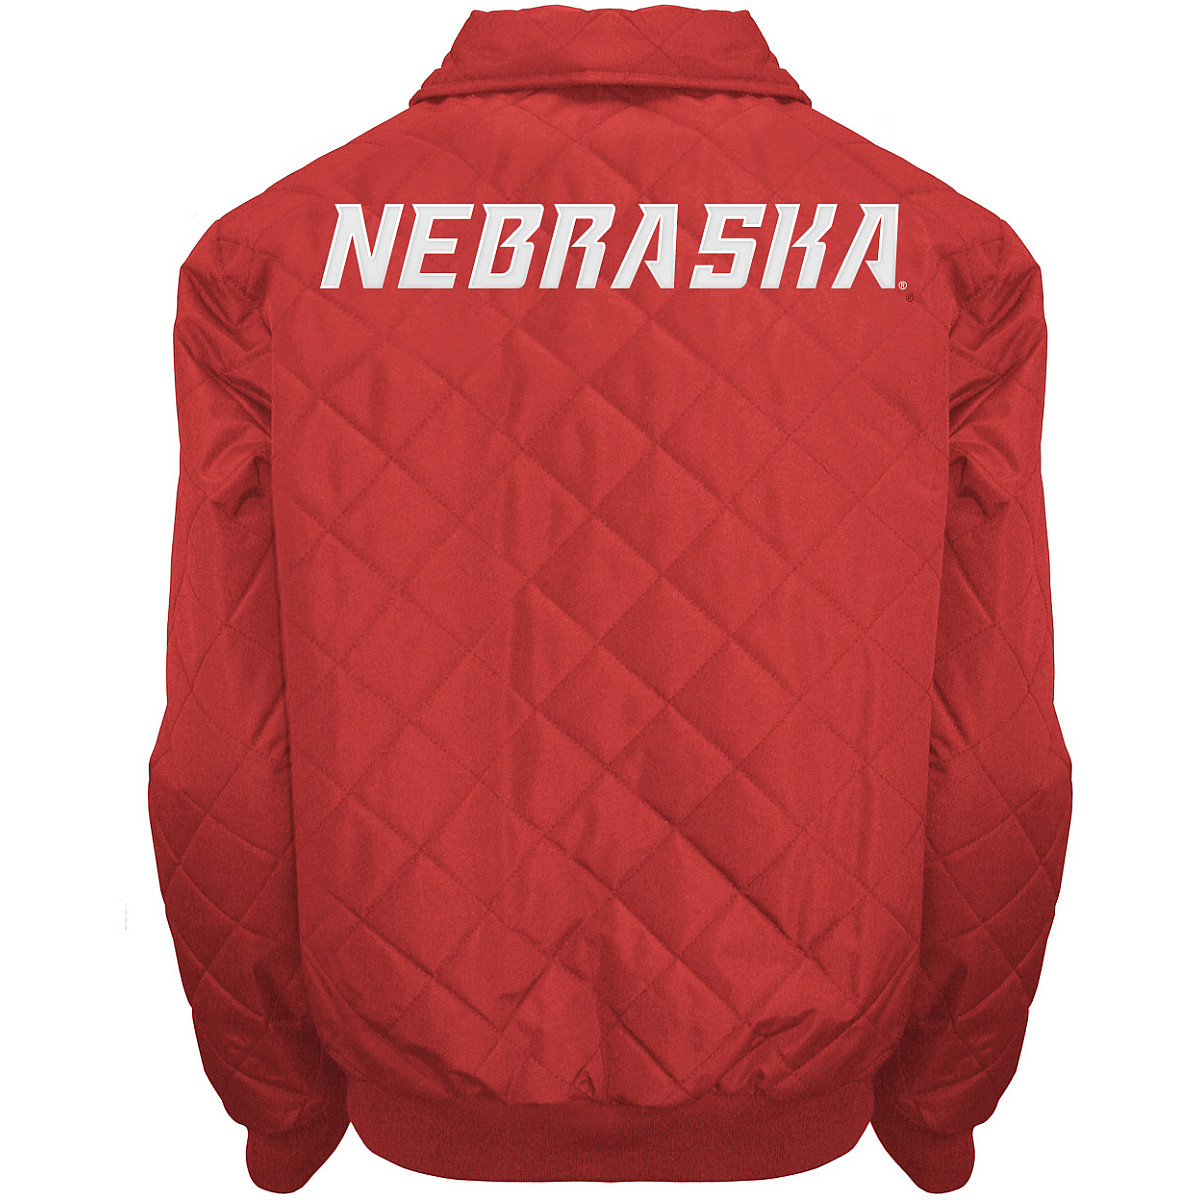 Franchise-Cub-MTC-Nebraska-Cornhuskers-Men-039-s-Clima-Full-Zip-Windshell-Jacket thumbnail 4